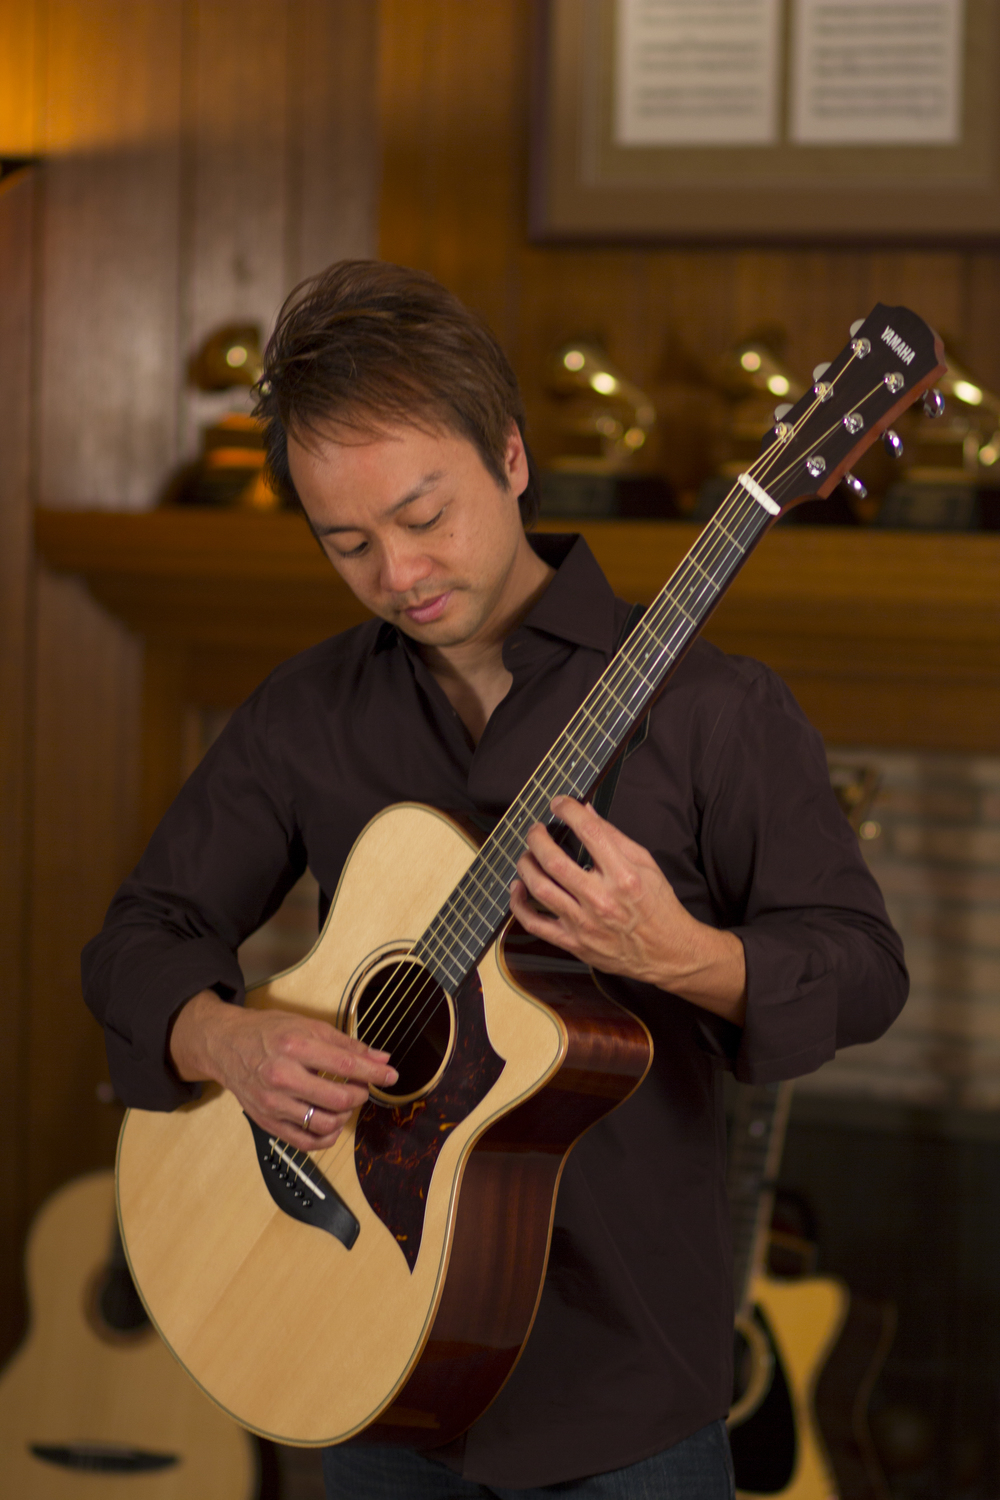 At home with the Yamaha AC3M guitar